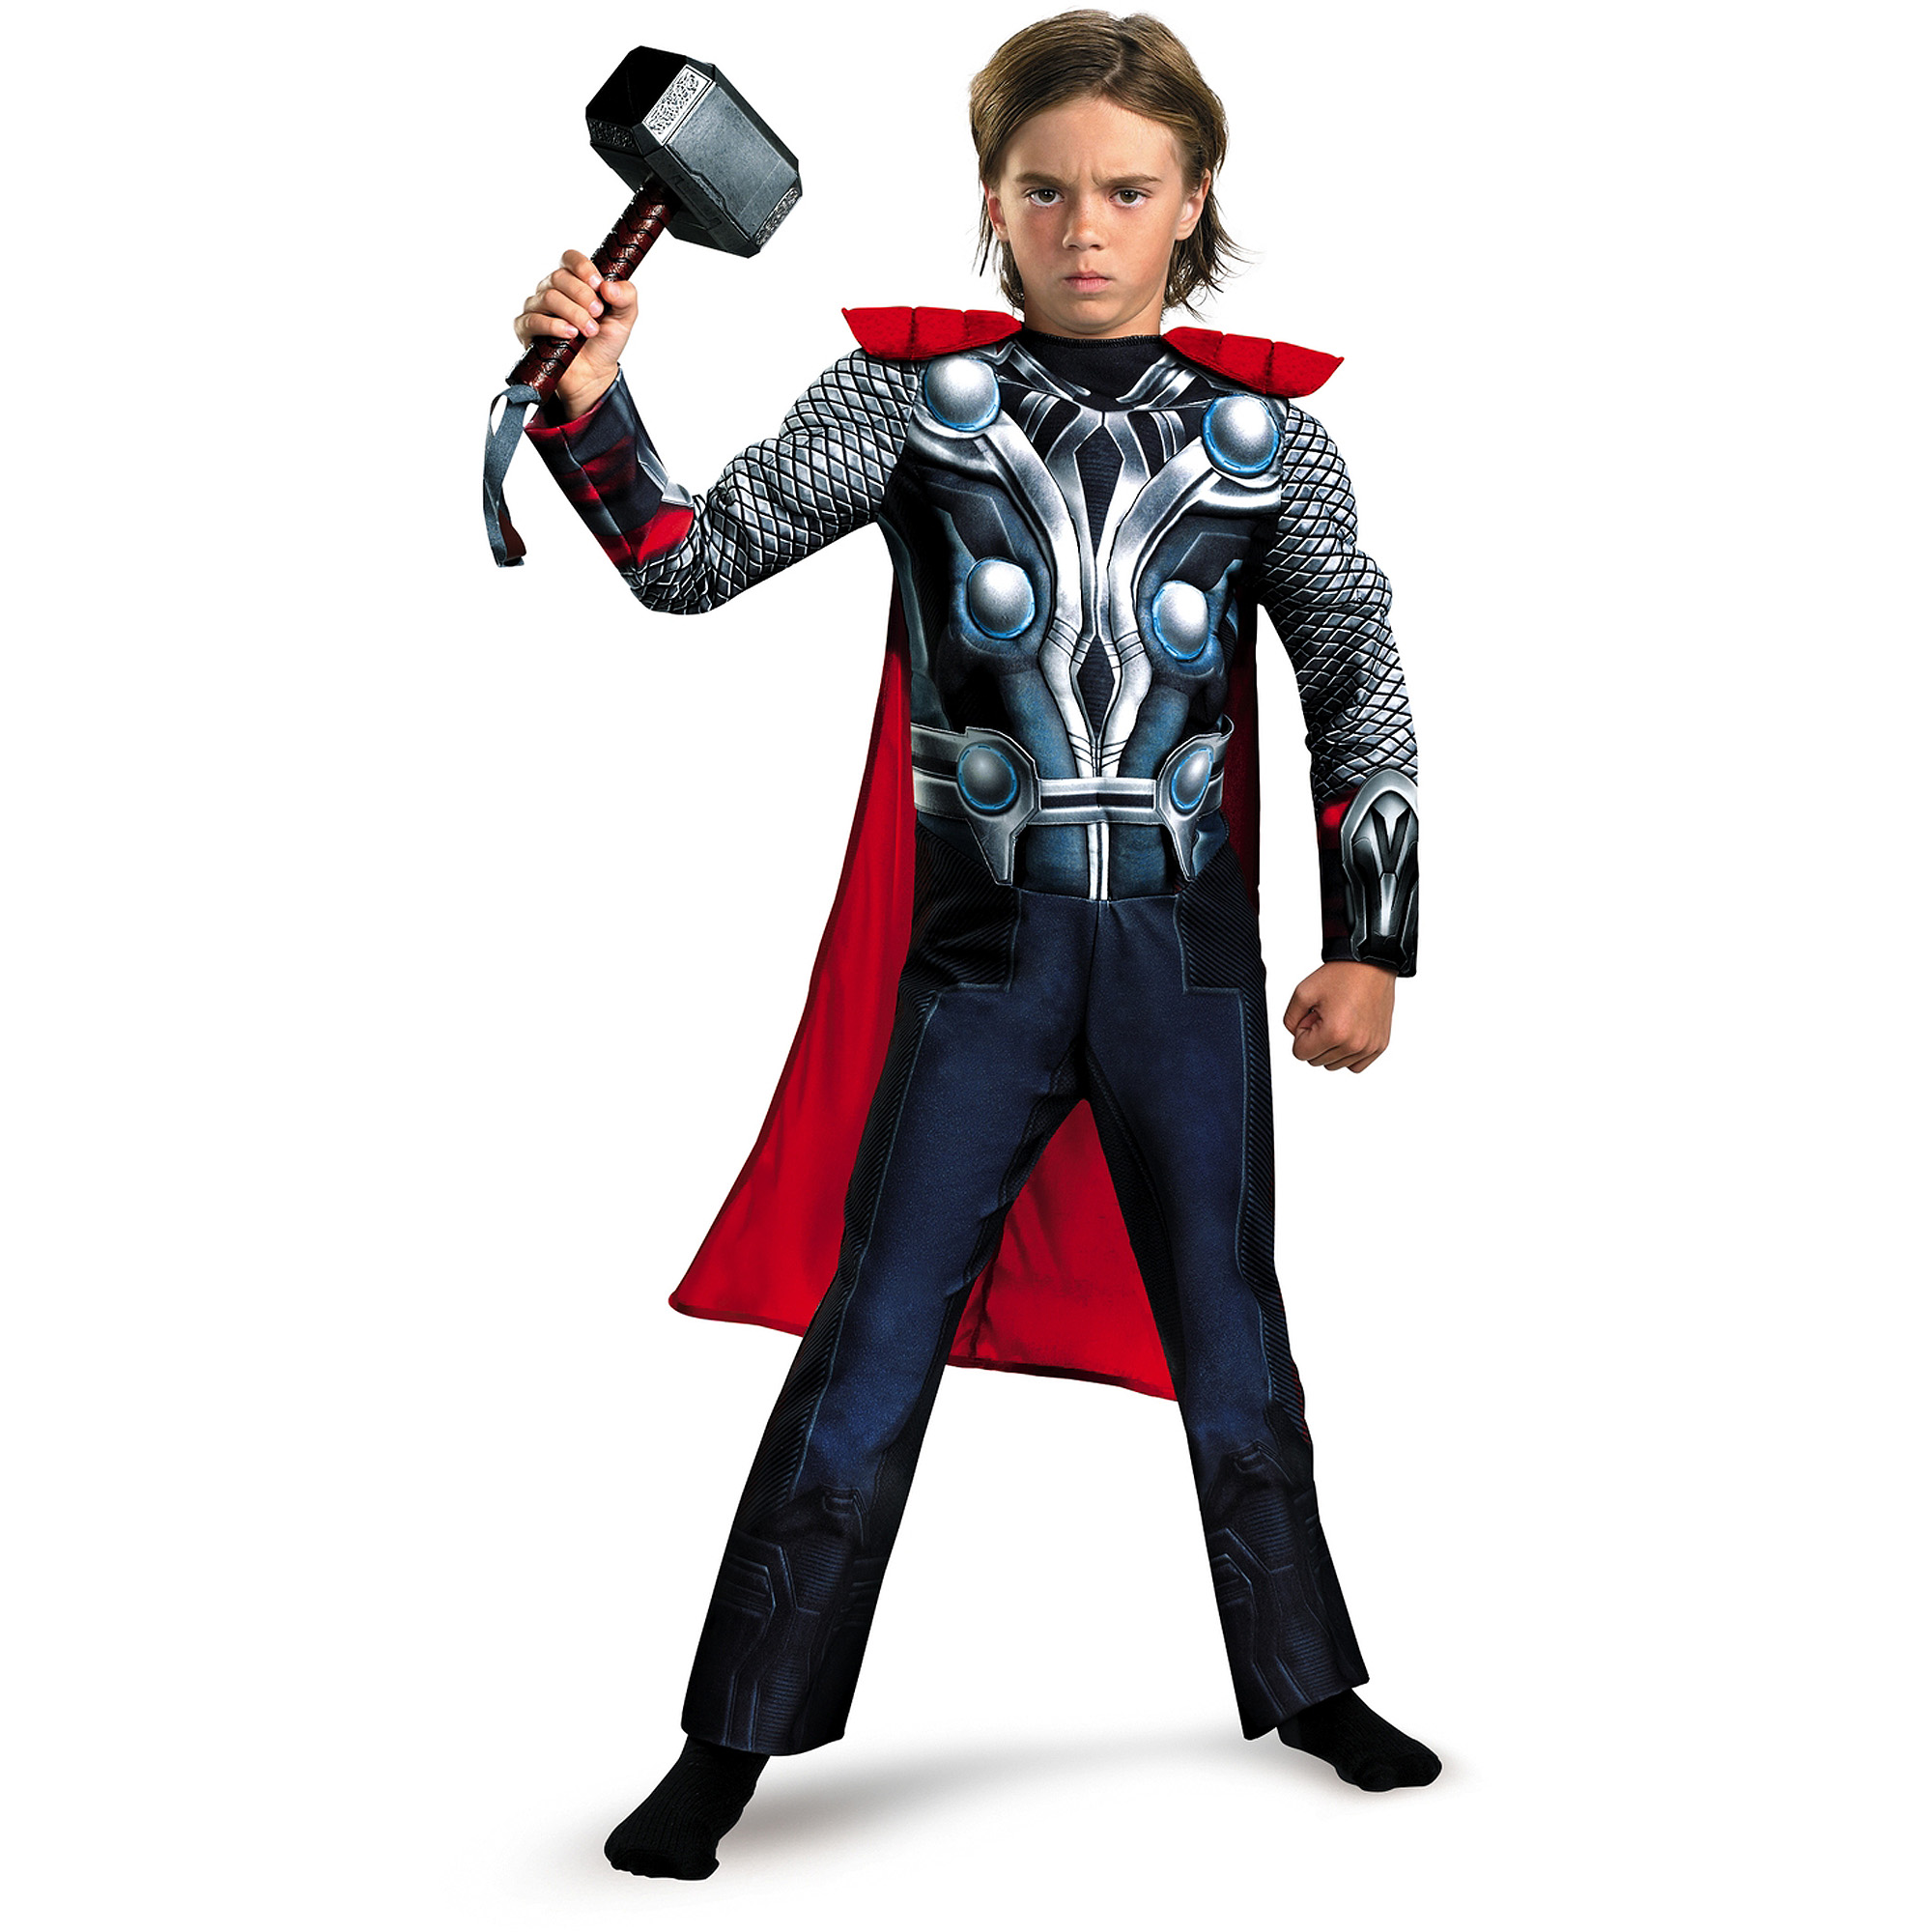 sc 1 st  Walmart & Thor Muscle Child Dress Up Costume - Walmart.com